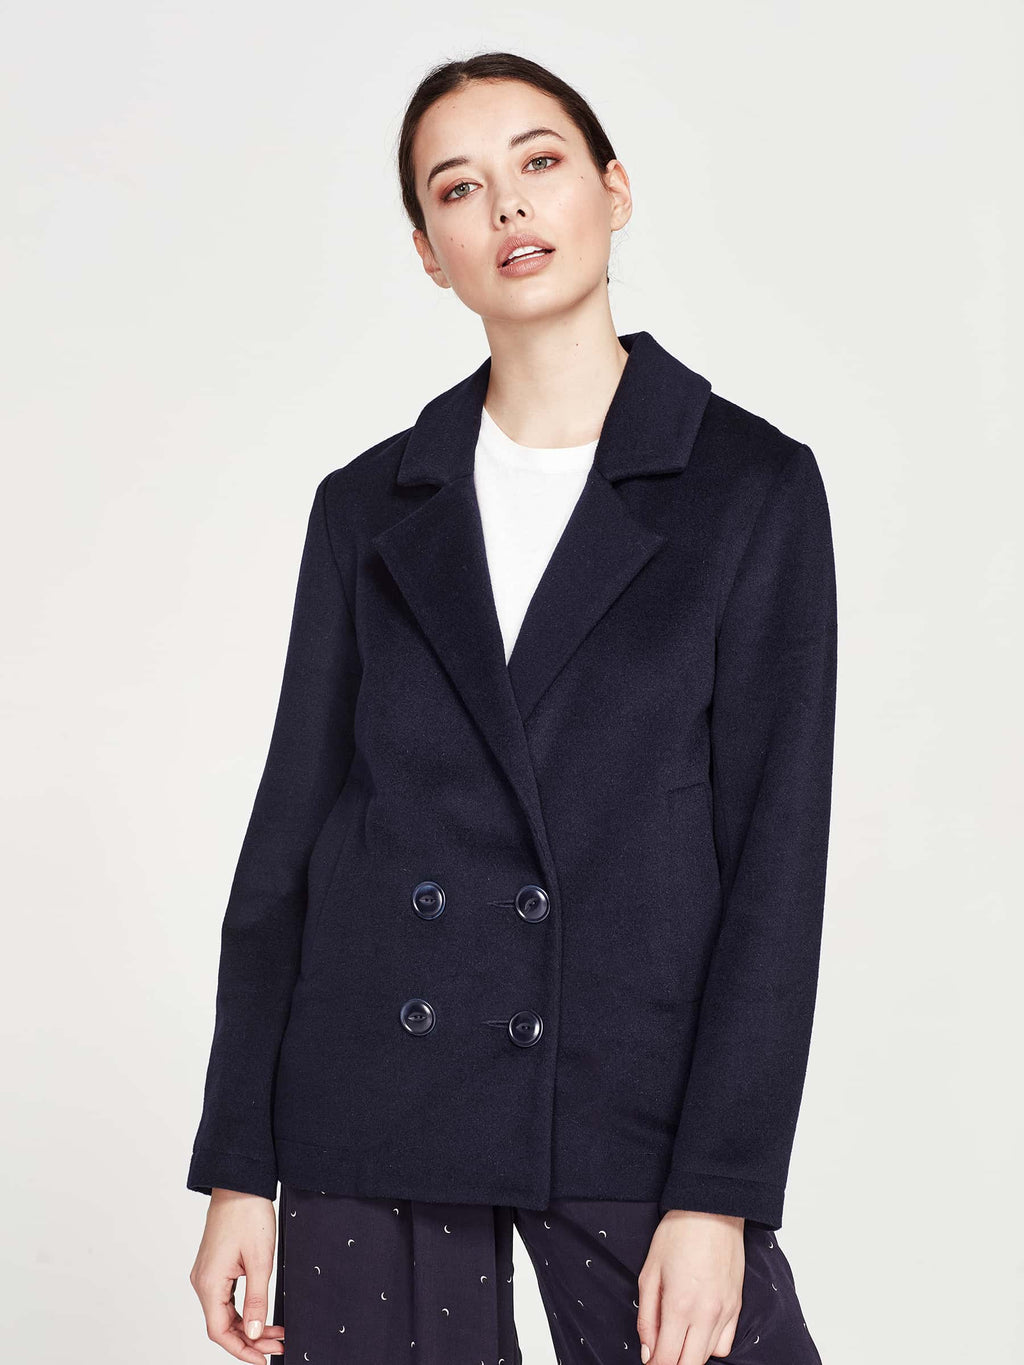 Andrew Jacket (Wool Coating) Royal